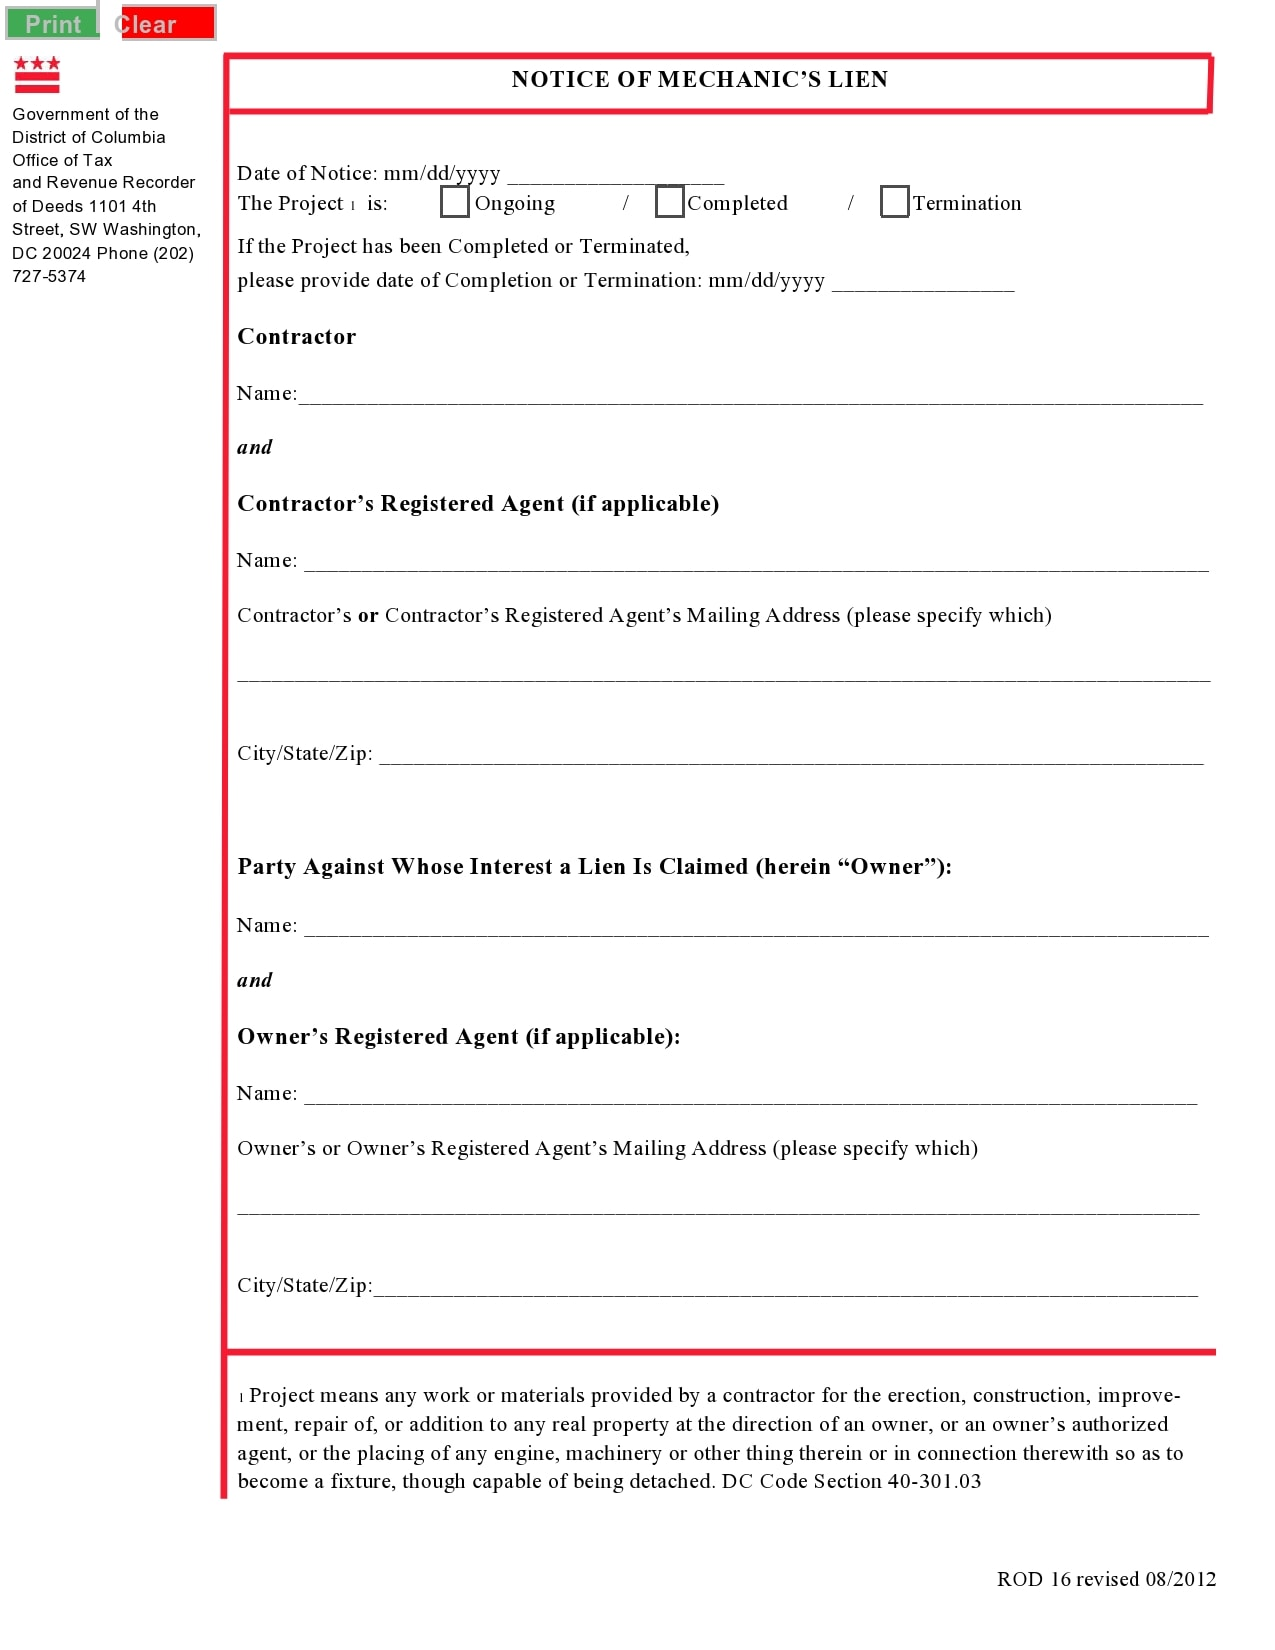 mechanics lien form 07